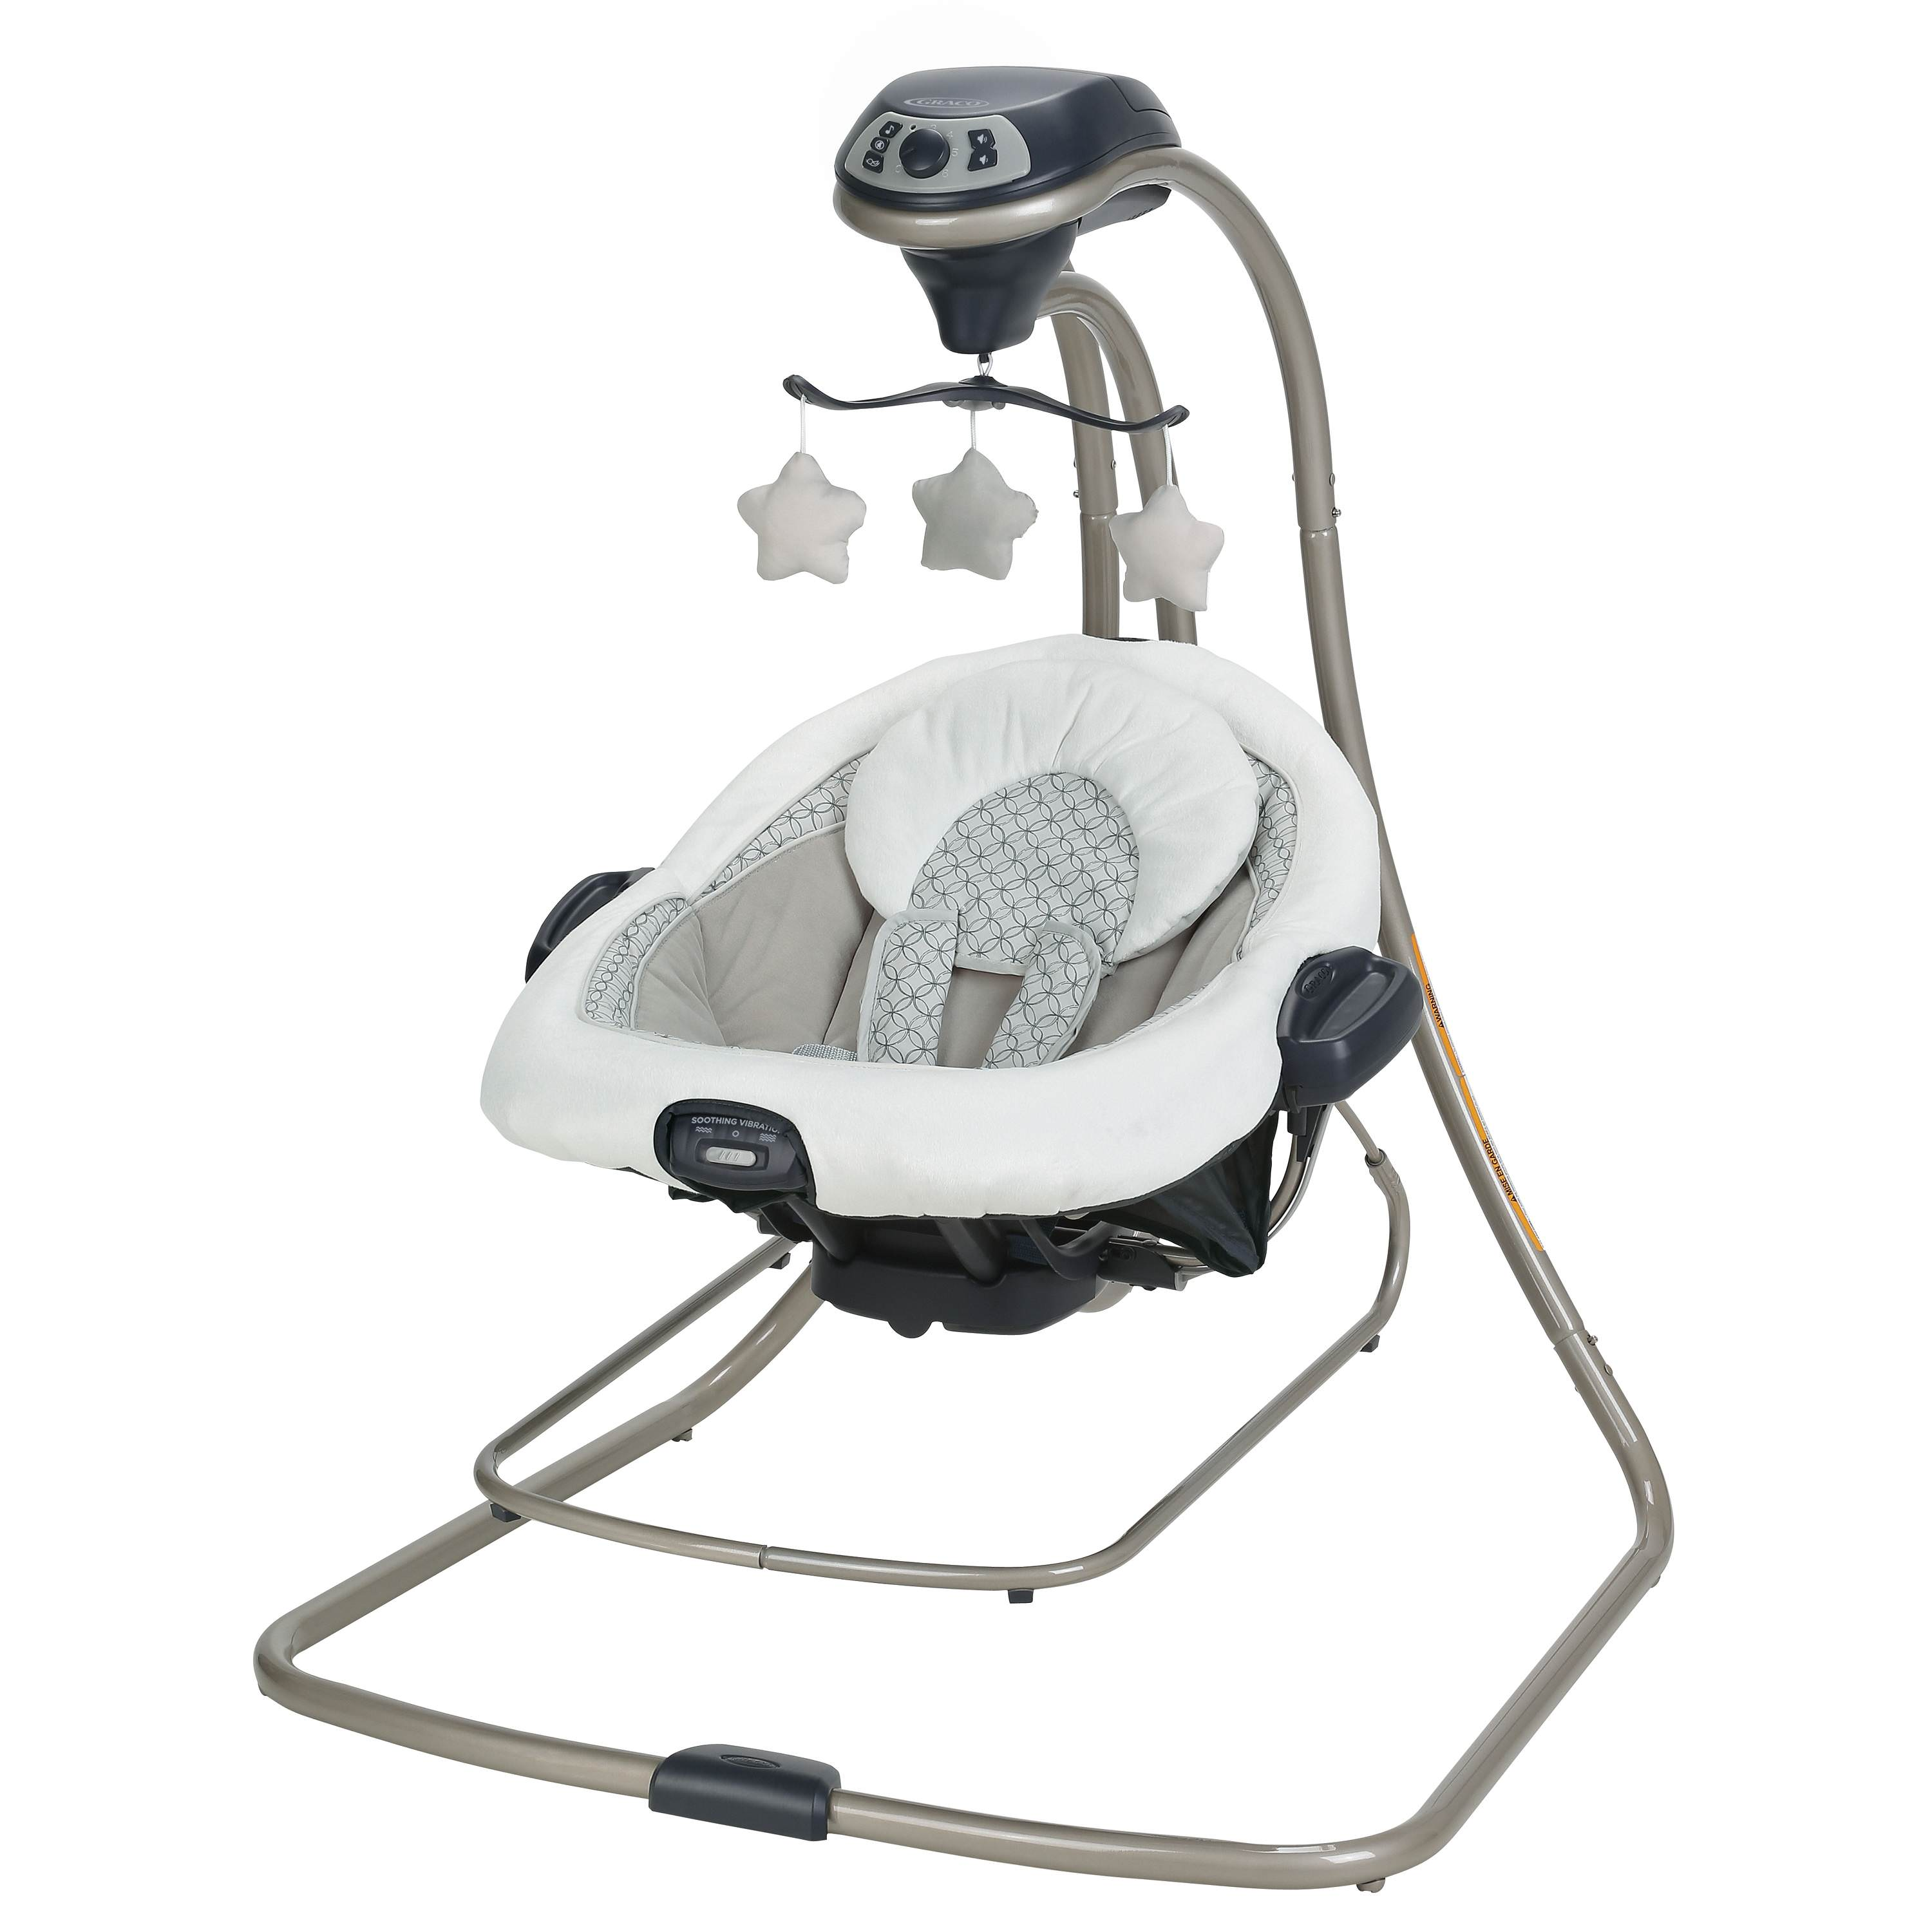 Graco Duet Connect LX Swing and Bouncer, McKinley by Graco